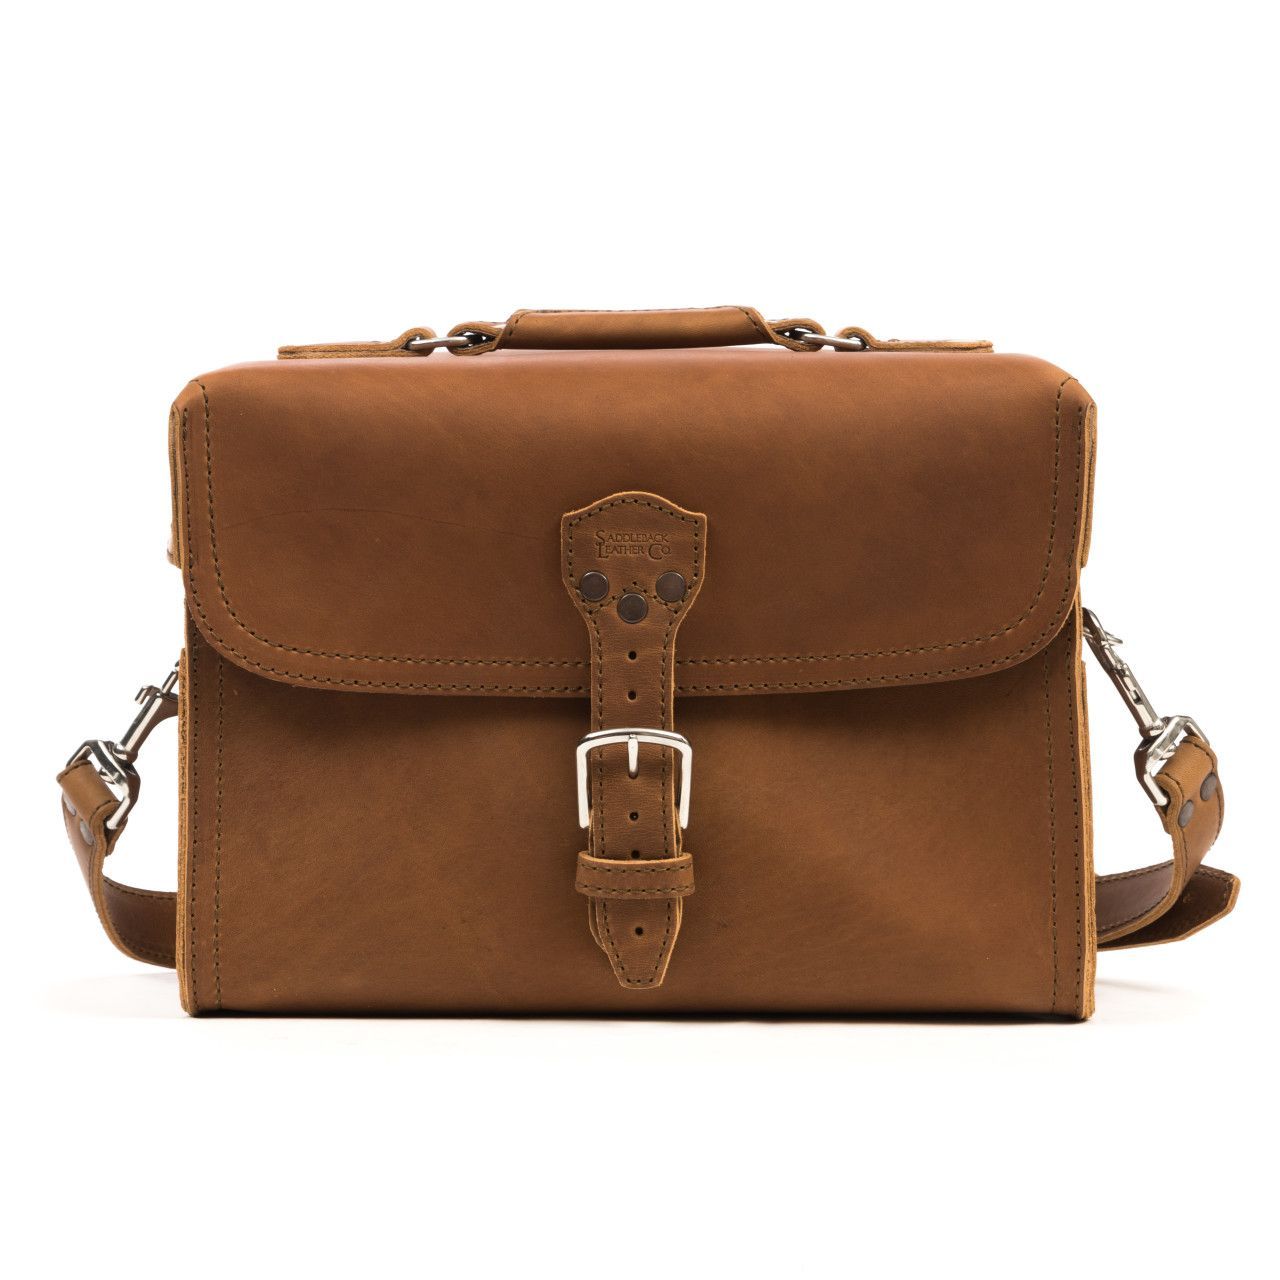 leather gadget bag large in tobacco leather